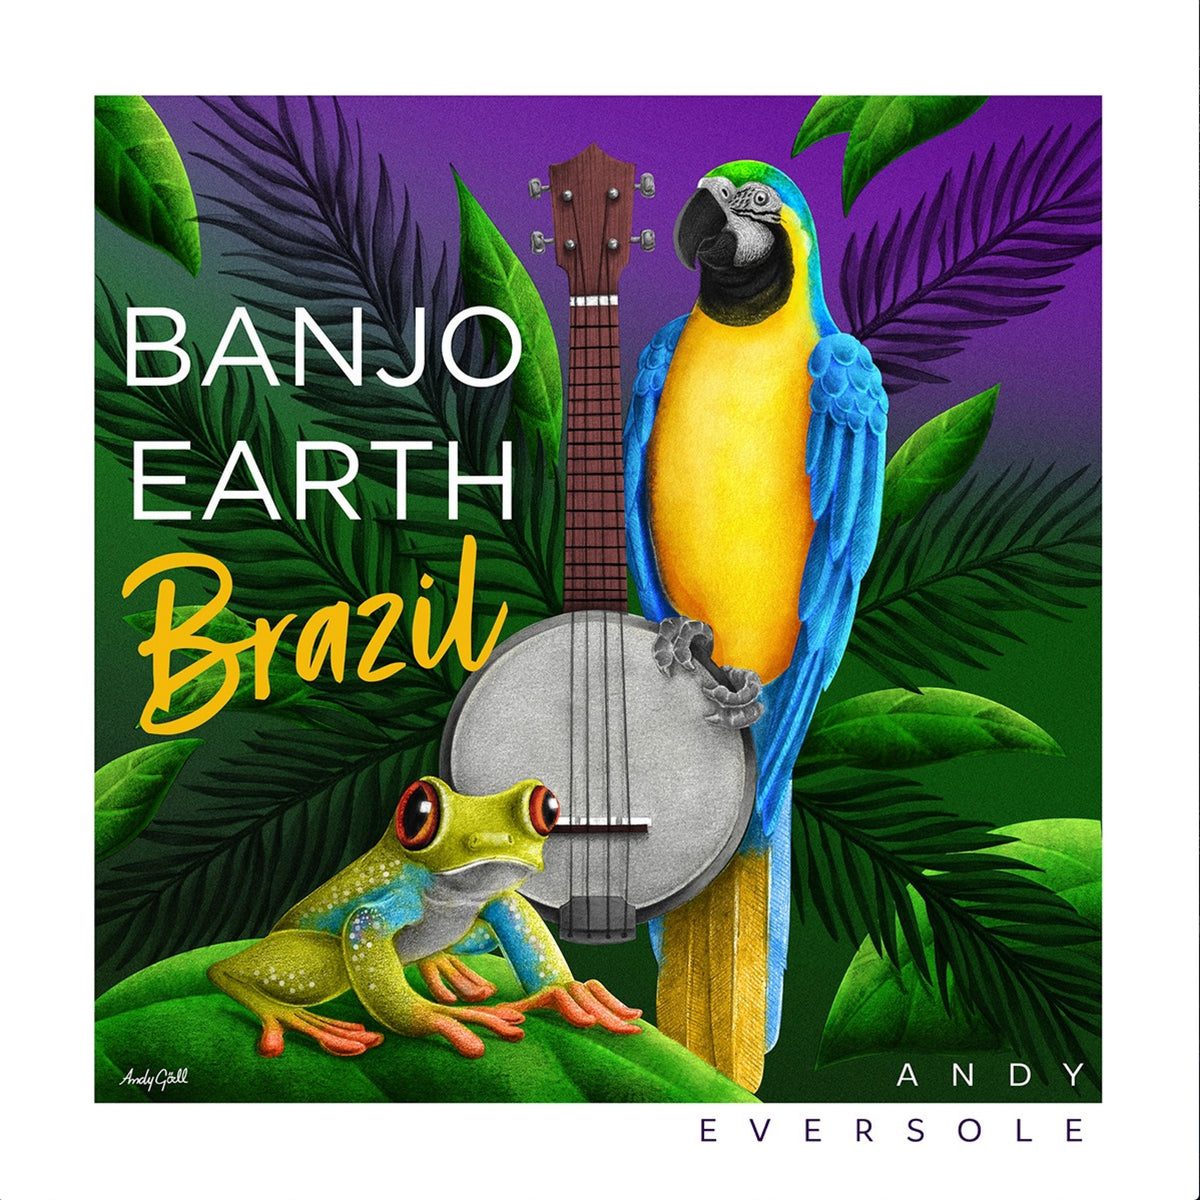 Banjo Earth Brazil